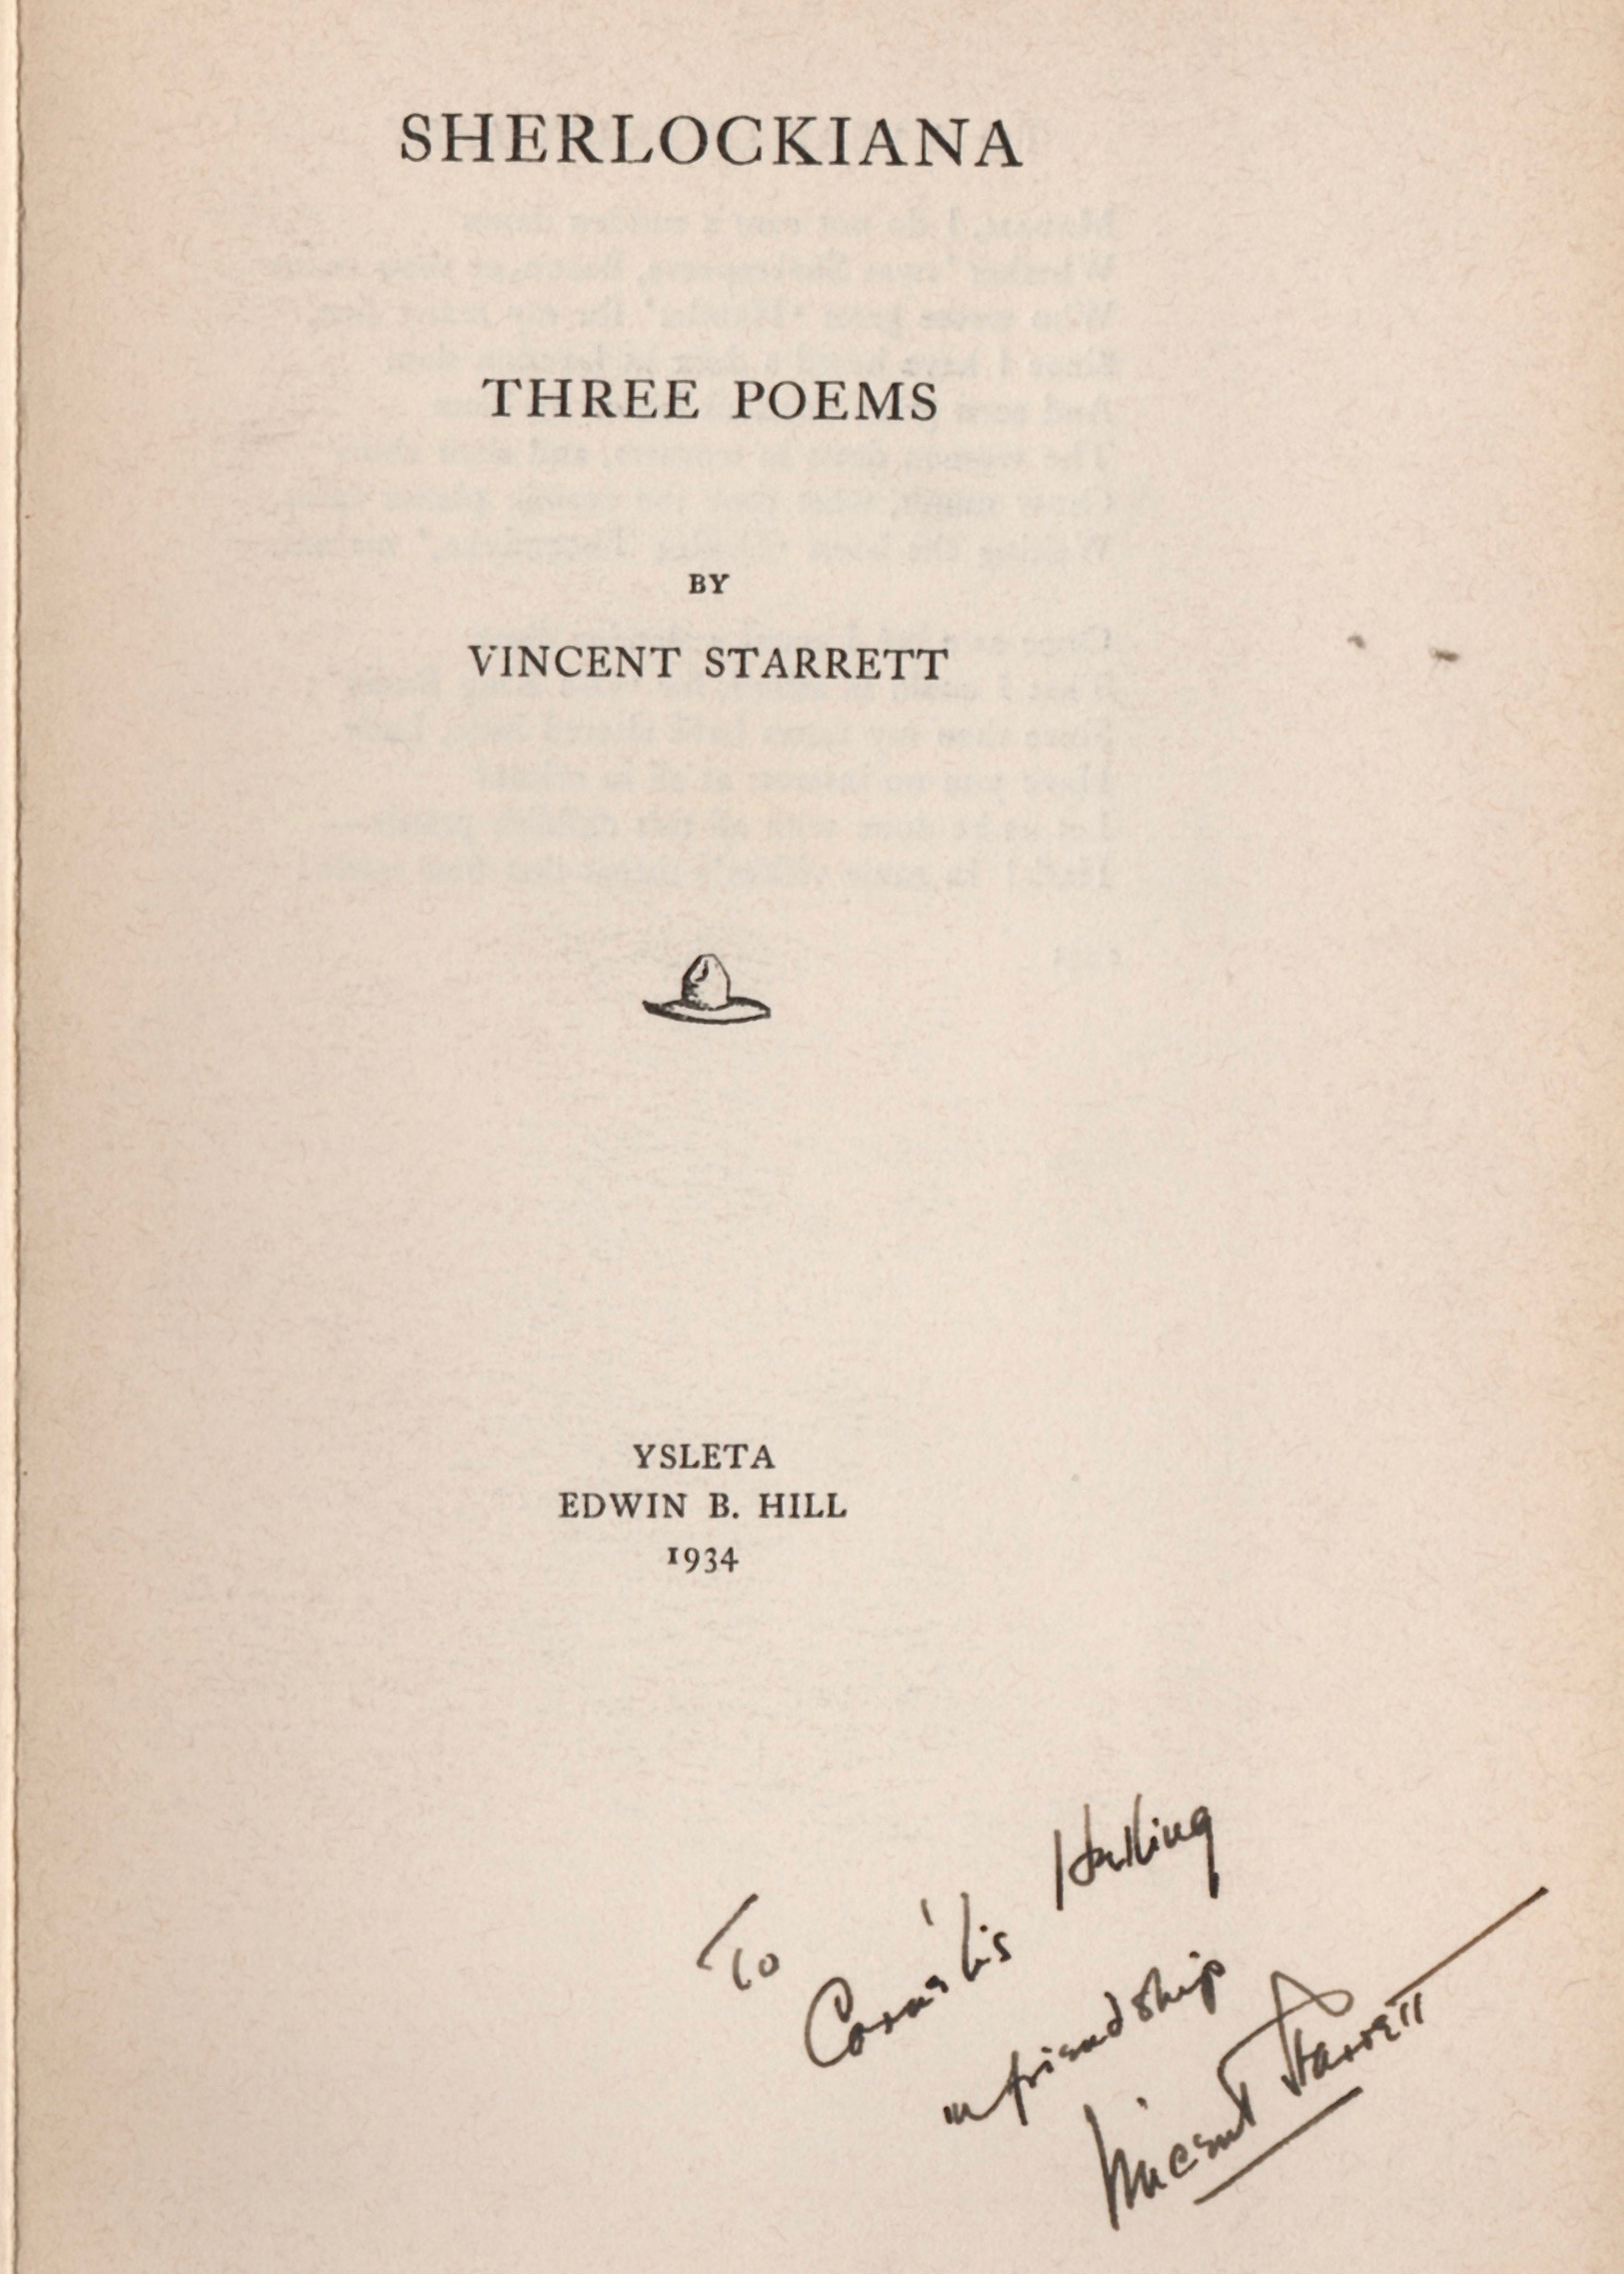 """An earlier example of Sherlockiana produced by Edwin B. Hill for Vincent Starrett. """"Three Poems"""" was printed in 1934, eight years before the leaflet that carried """"221B."""""""